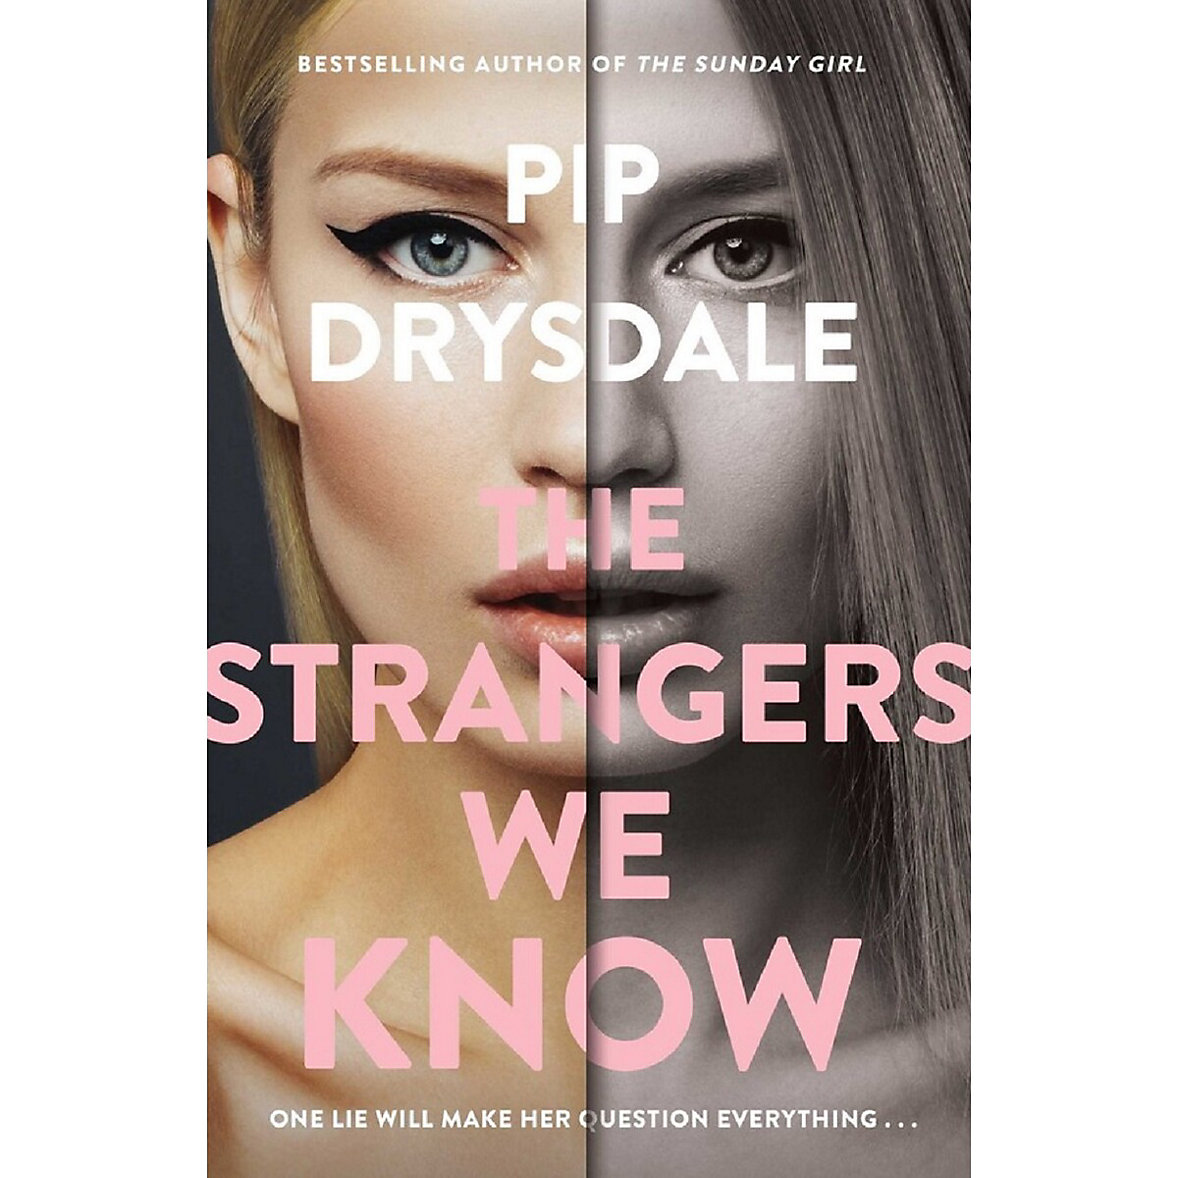 The Strangers We Know - Pip Drysdale